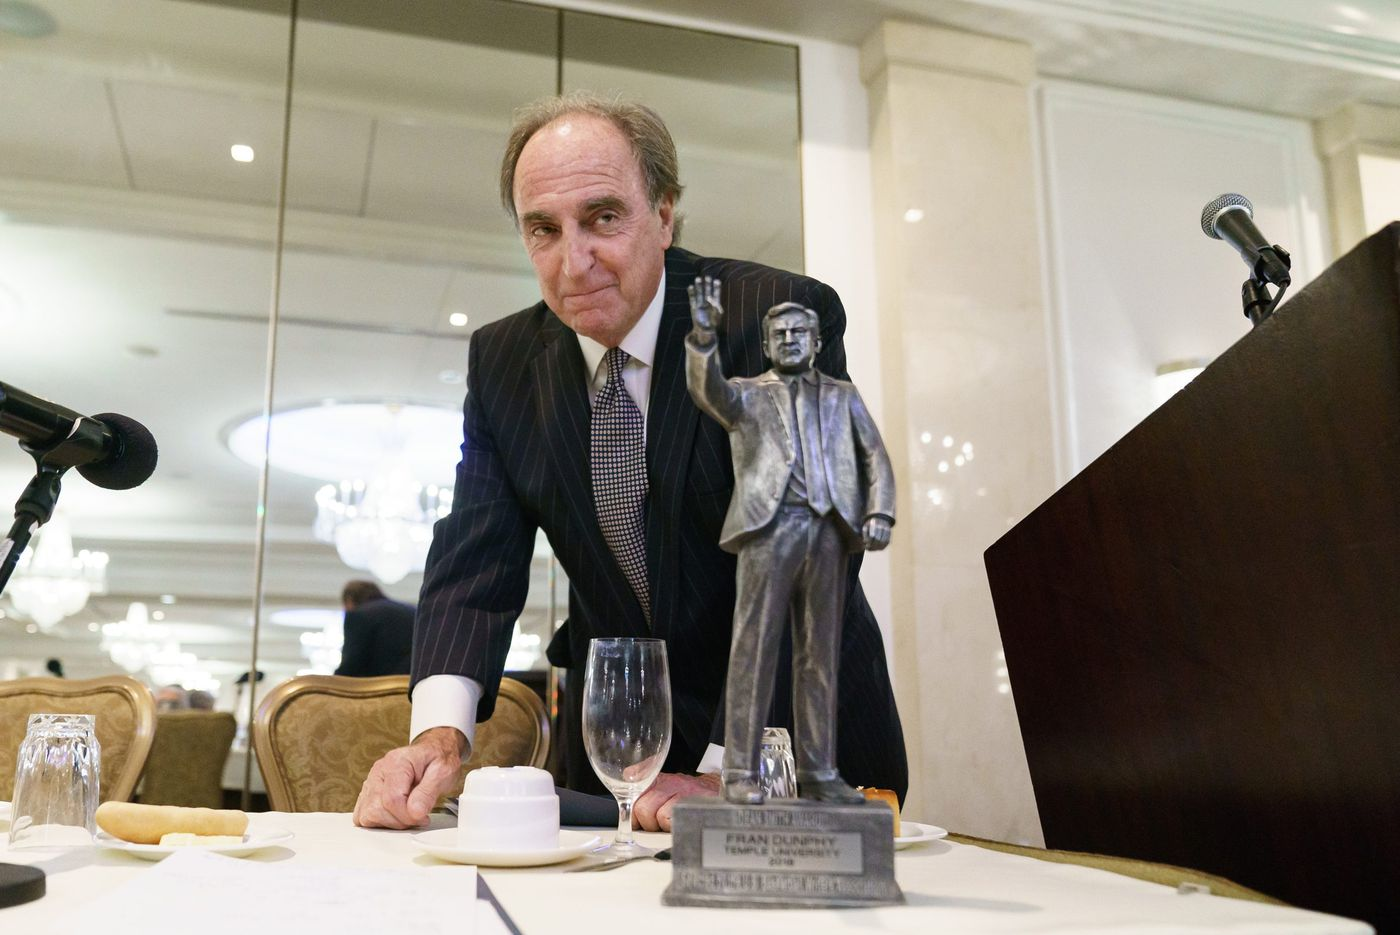 A big award for Fran Dunphy, and why he got it